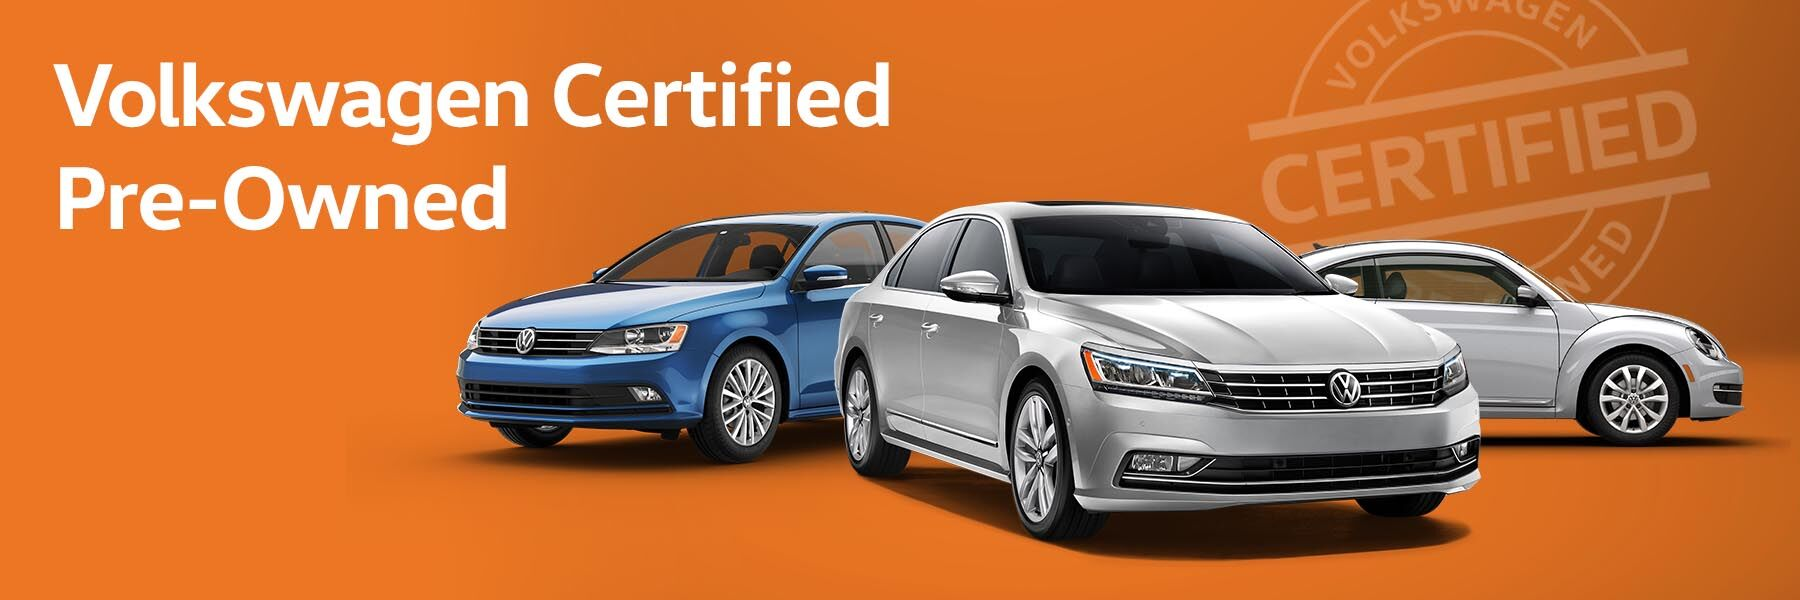 Volkswagen Certified Pre-Owned in Mentor, OH